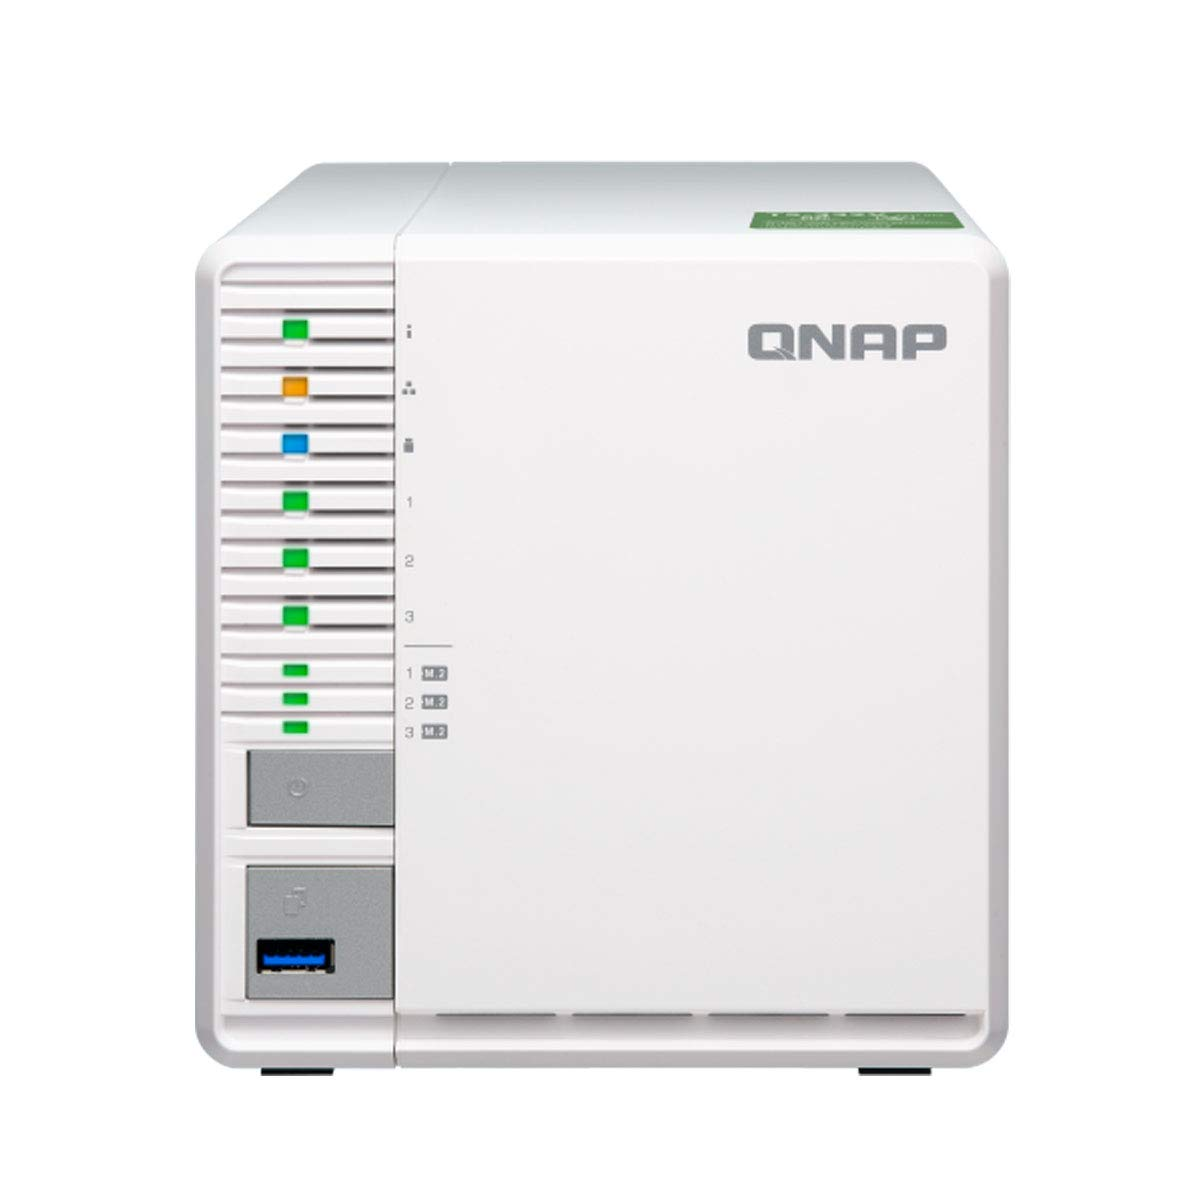 QNAP TS-332X 3-Bay 64-bit NAS with Built-in 10G Network. Quad Core 1.7GHz, 2GB RAM, 1 X 10GbE (SFP+), 2 X 1GbE, 3 X 3.5/2.5'' Drive Slots, 3 X M.2 SATA 2280 Slots, RAID 0/1/5 by QNAP (Image #1)